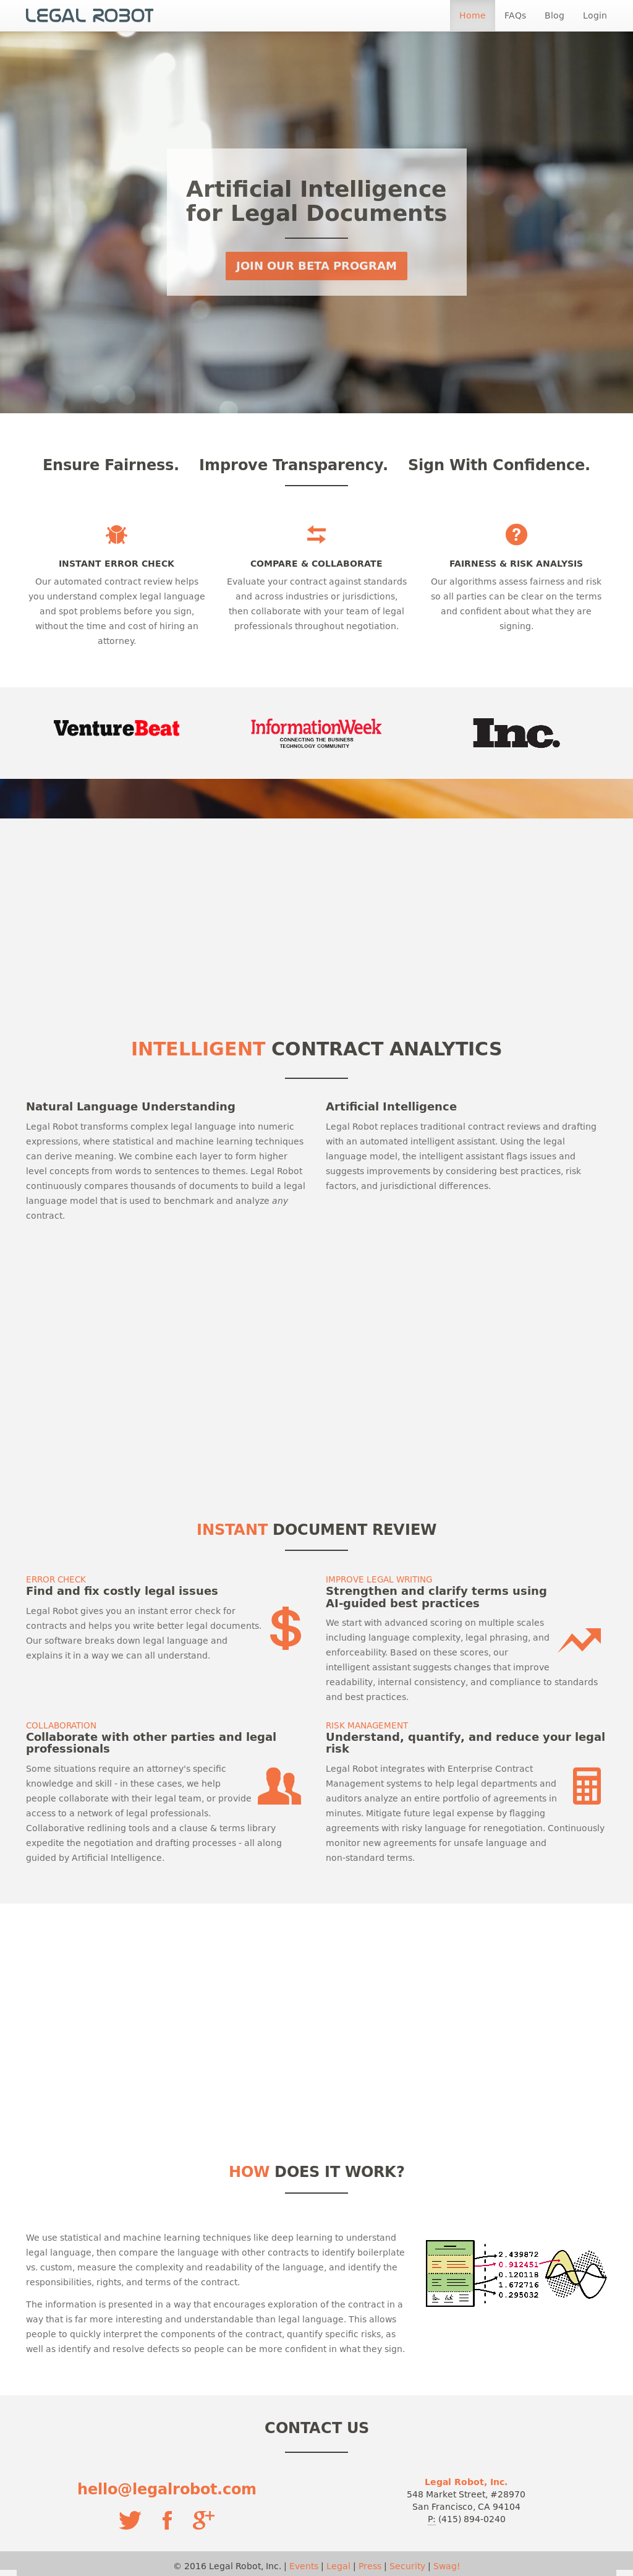 Legal Robot Competitors, Revenue and Employees - Owler Company Profile